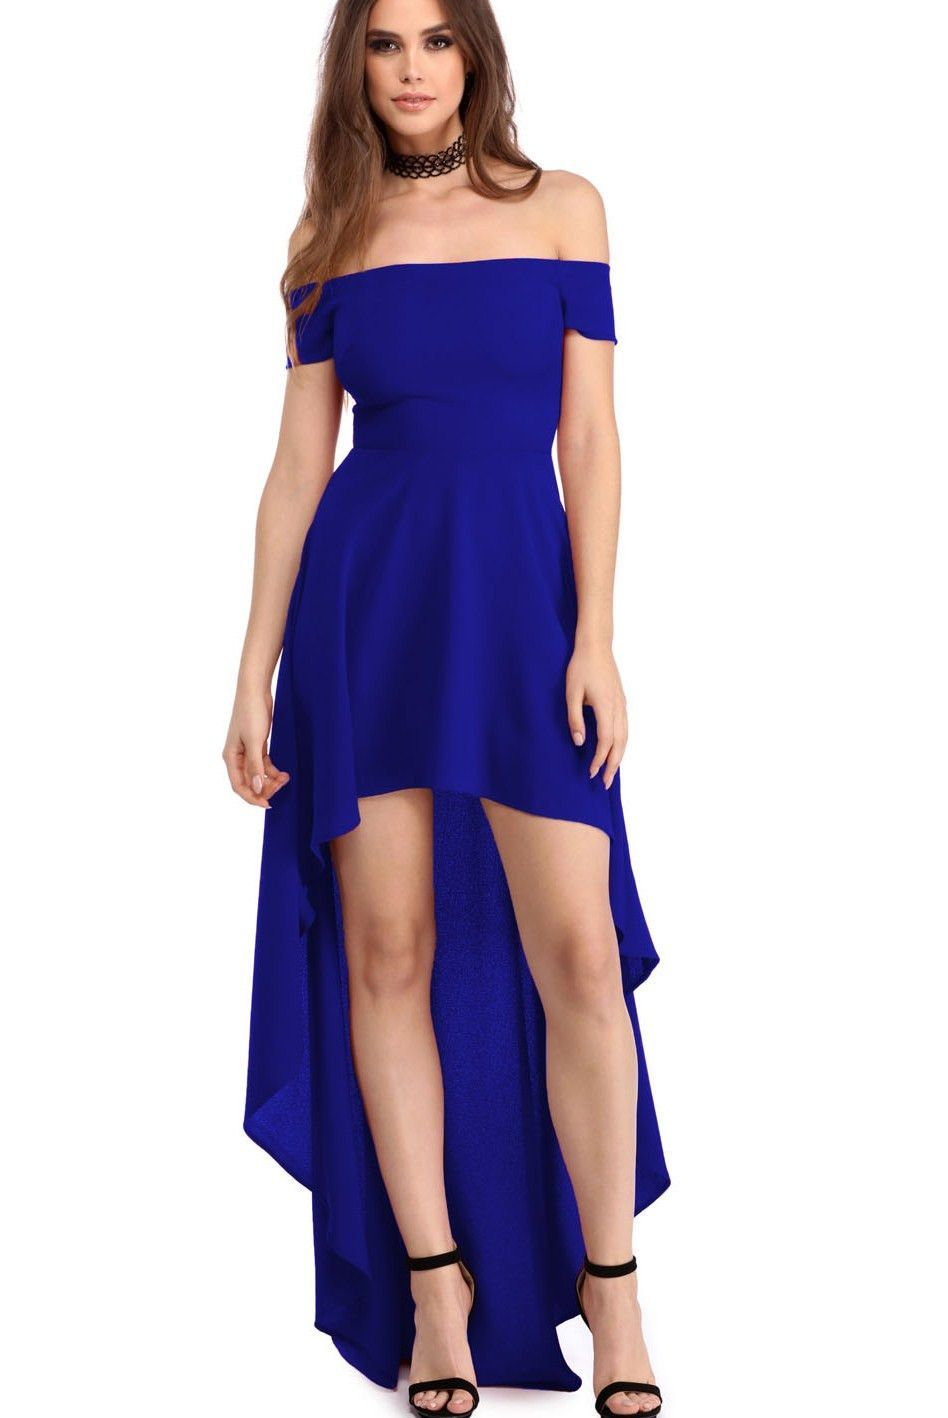 Blue High Low Hem Off Shoulder Party Evening Dress | Vestido para ...